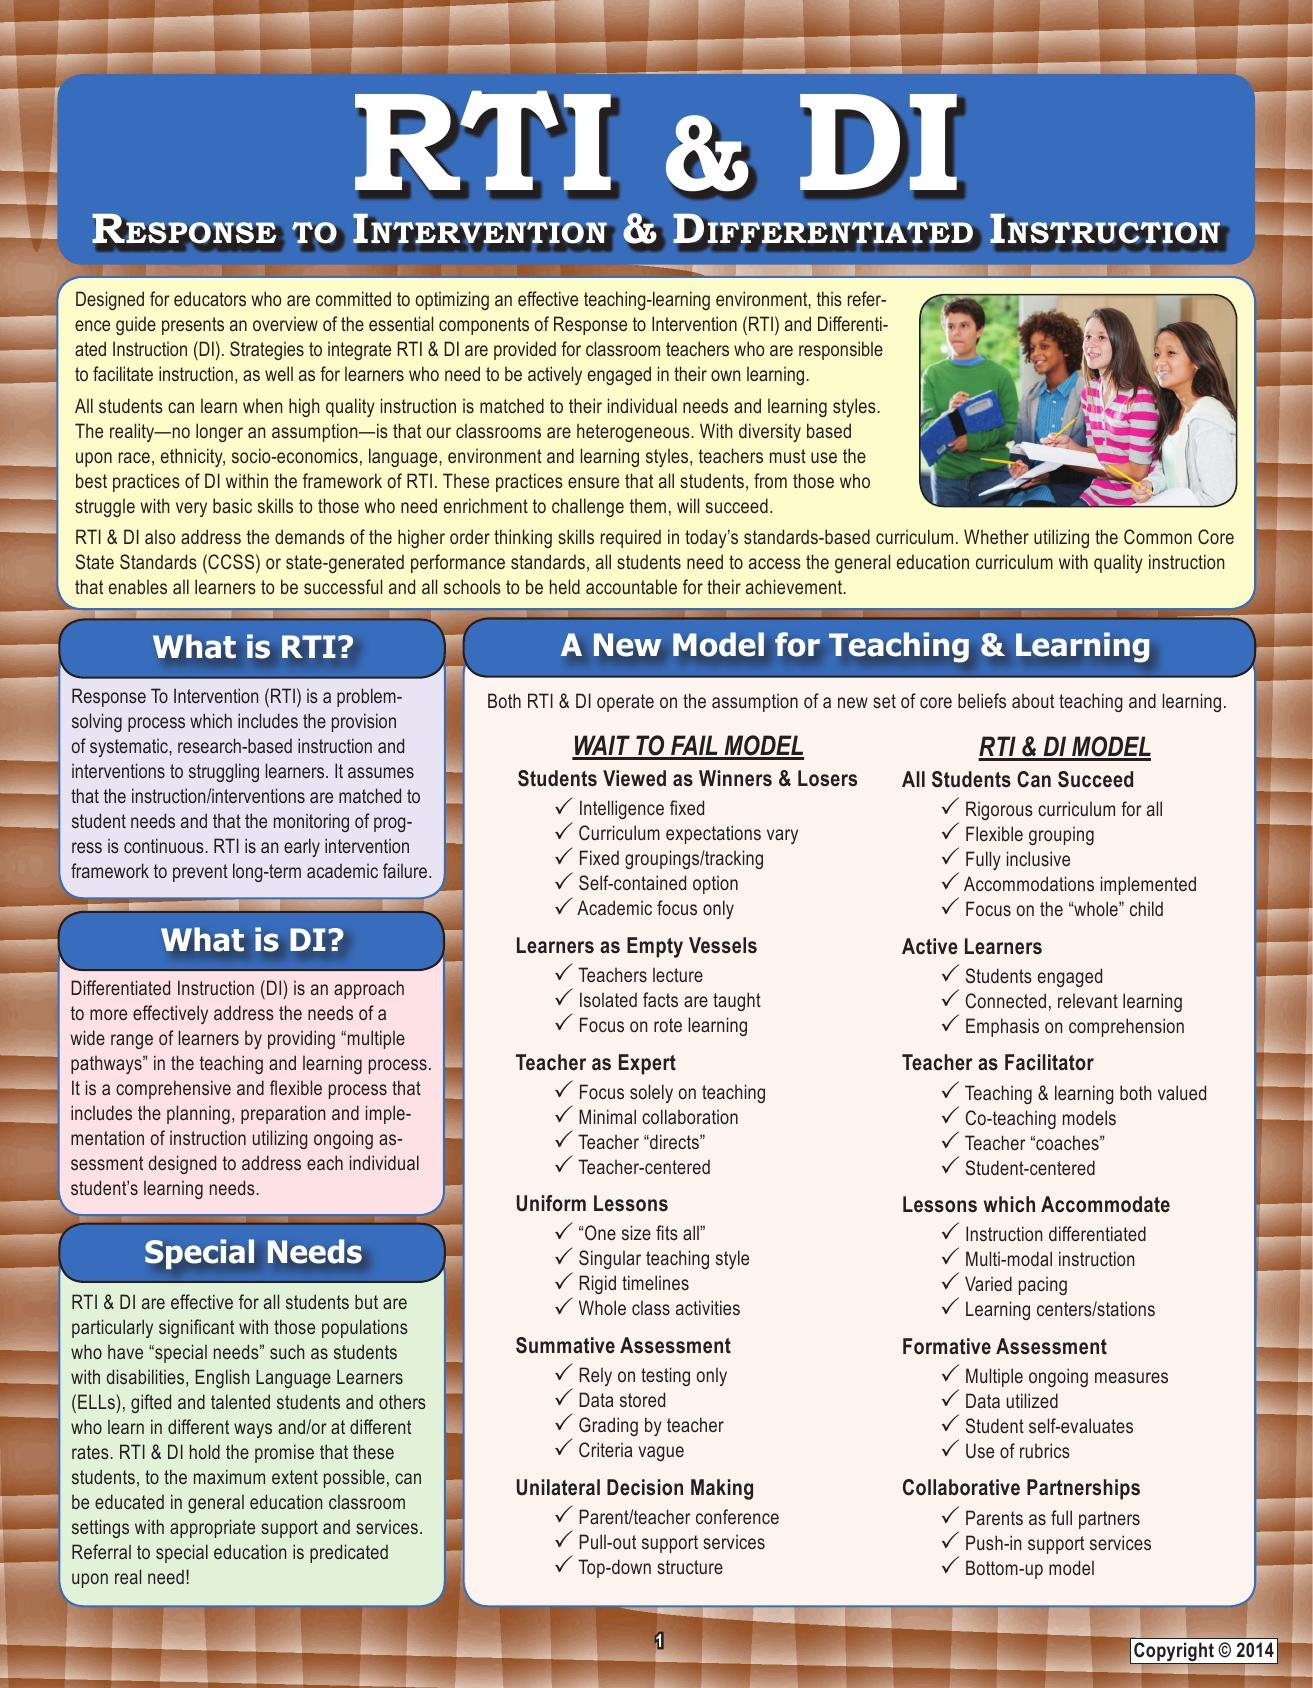 Rti Di Response To Intervention Differentiated Instruction